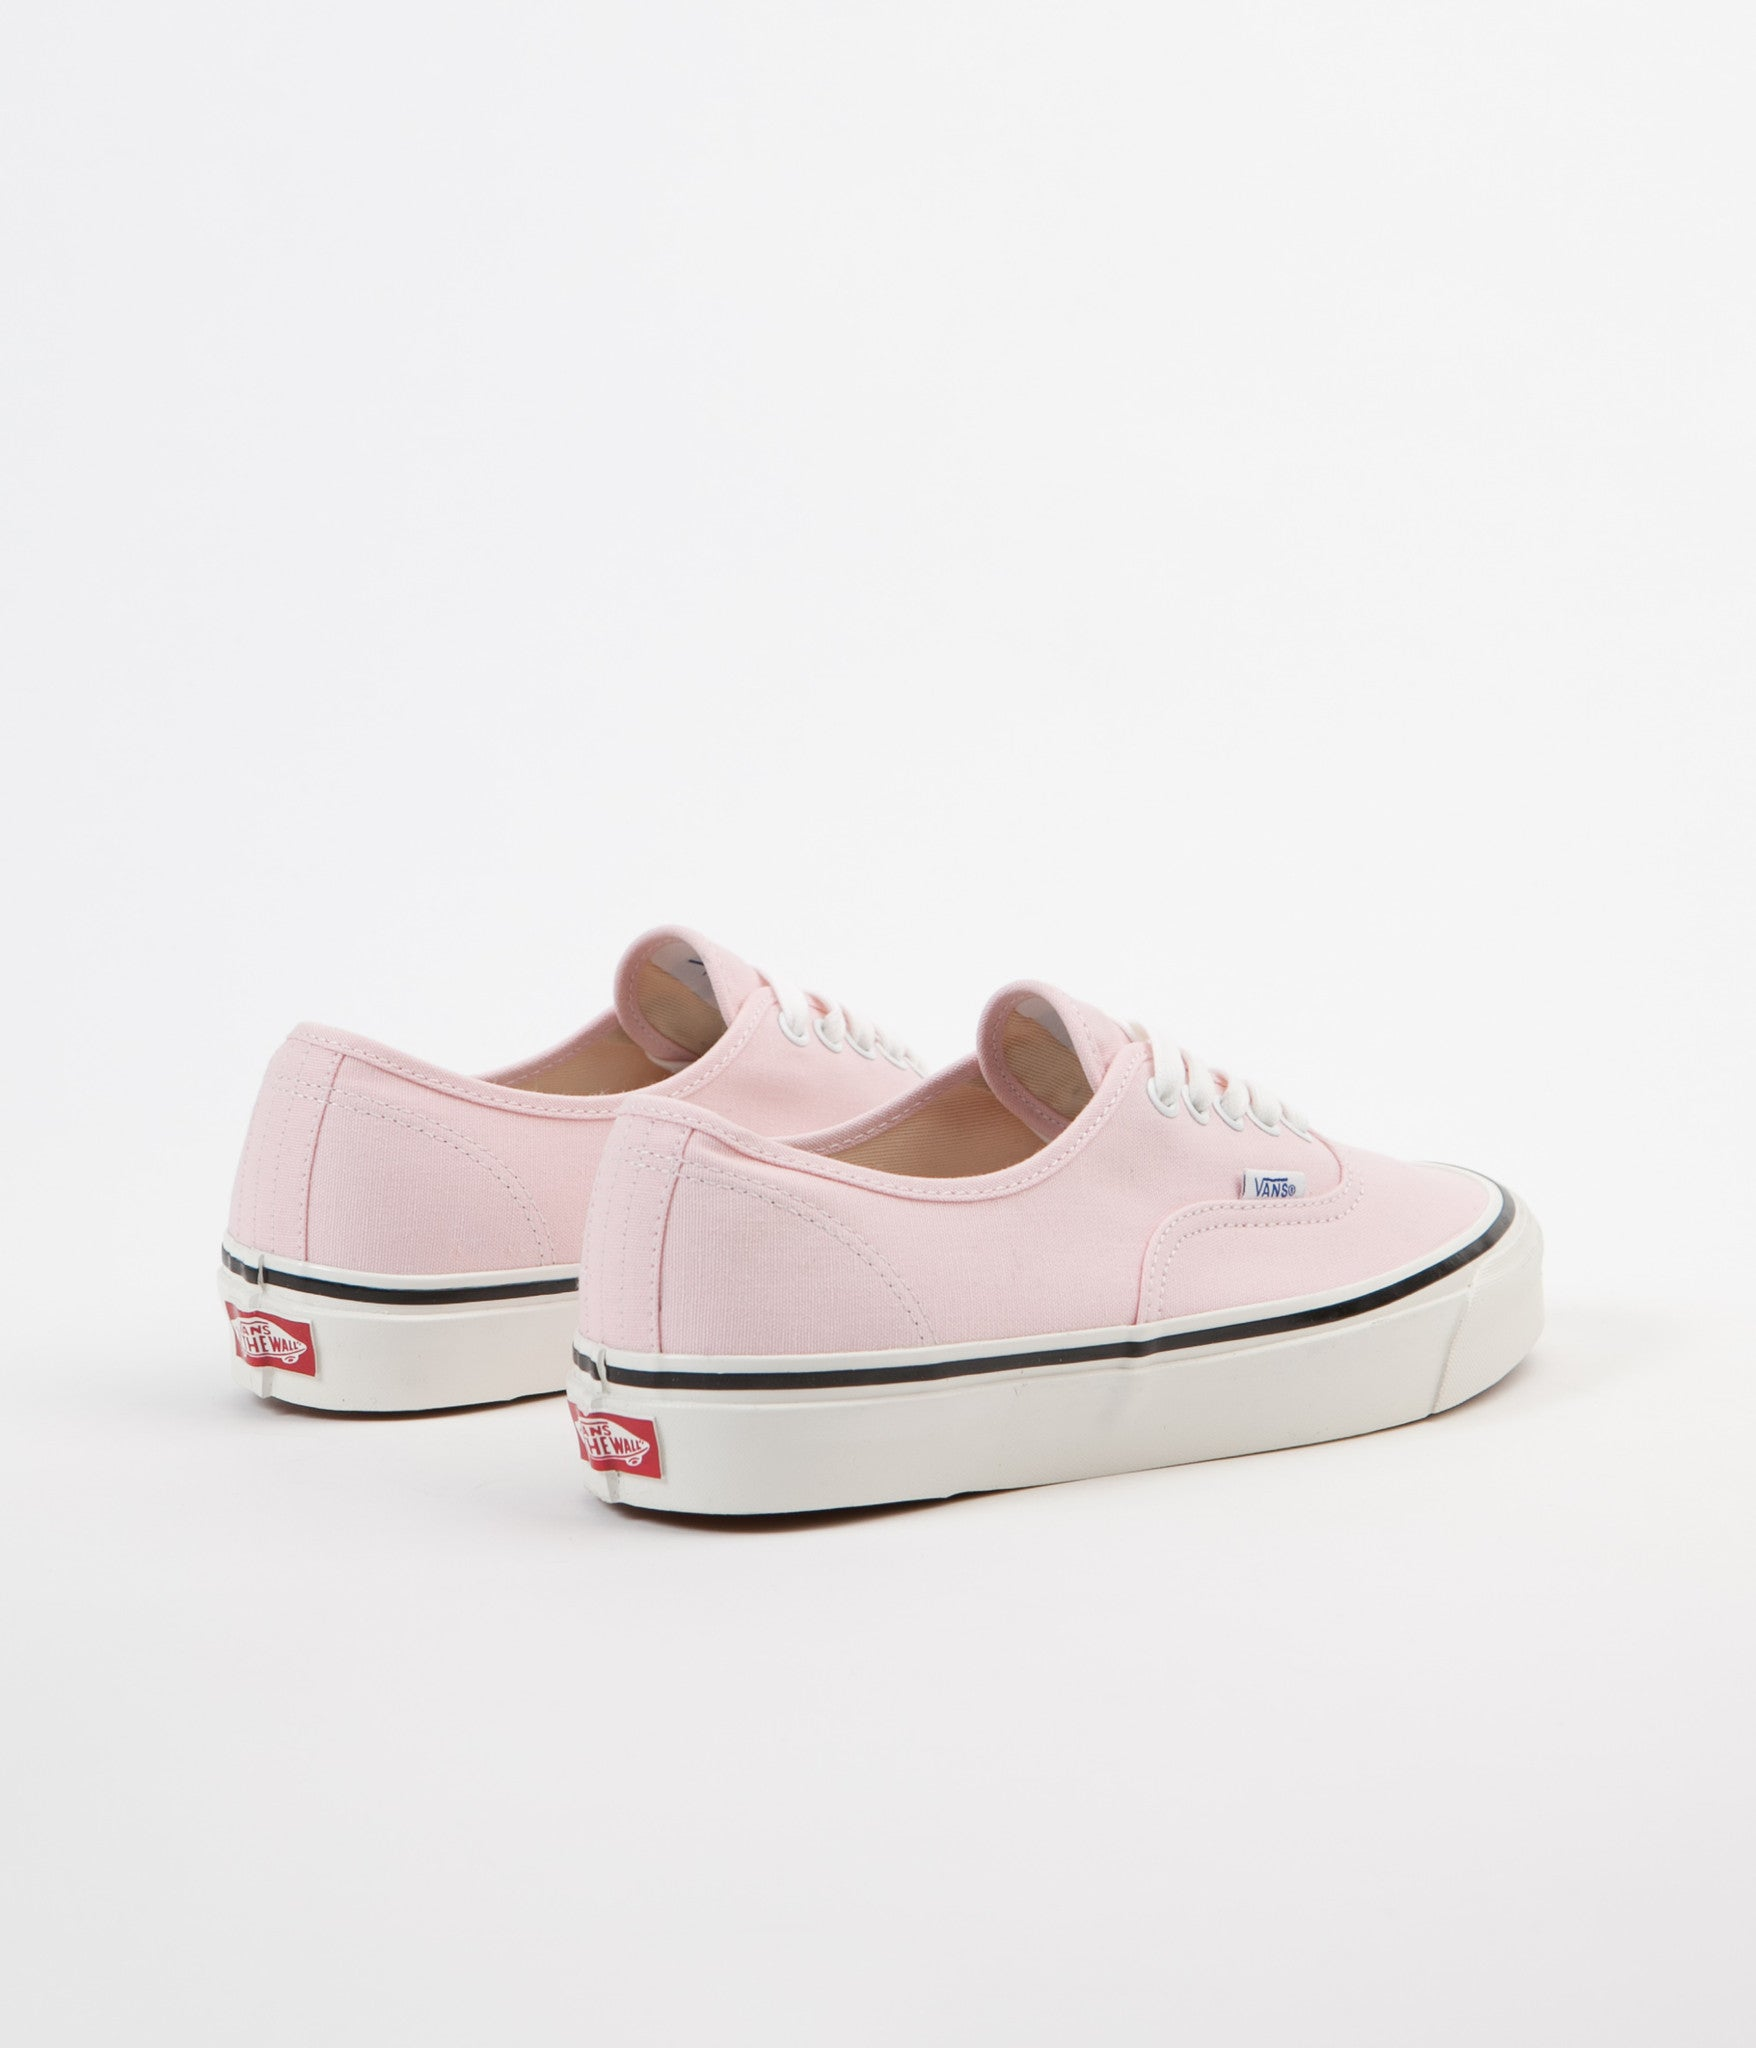 ... Vans Authentic 44 DX Anaheim Factory Shoes - Pink ... 01d4812a0